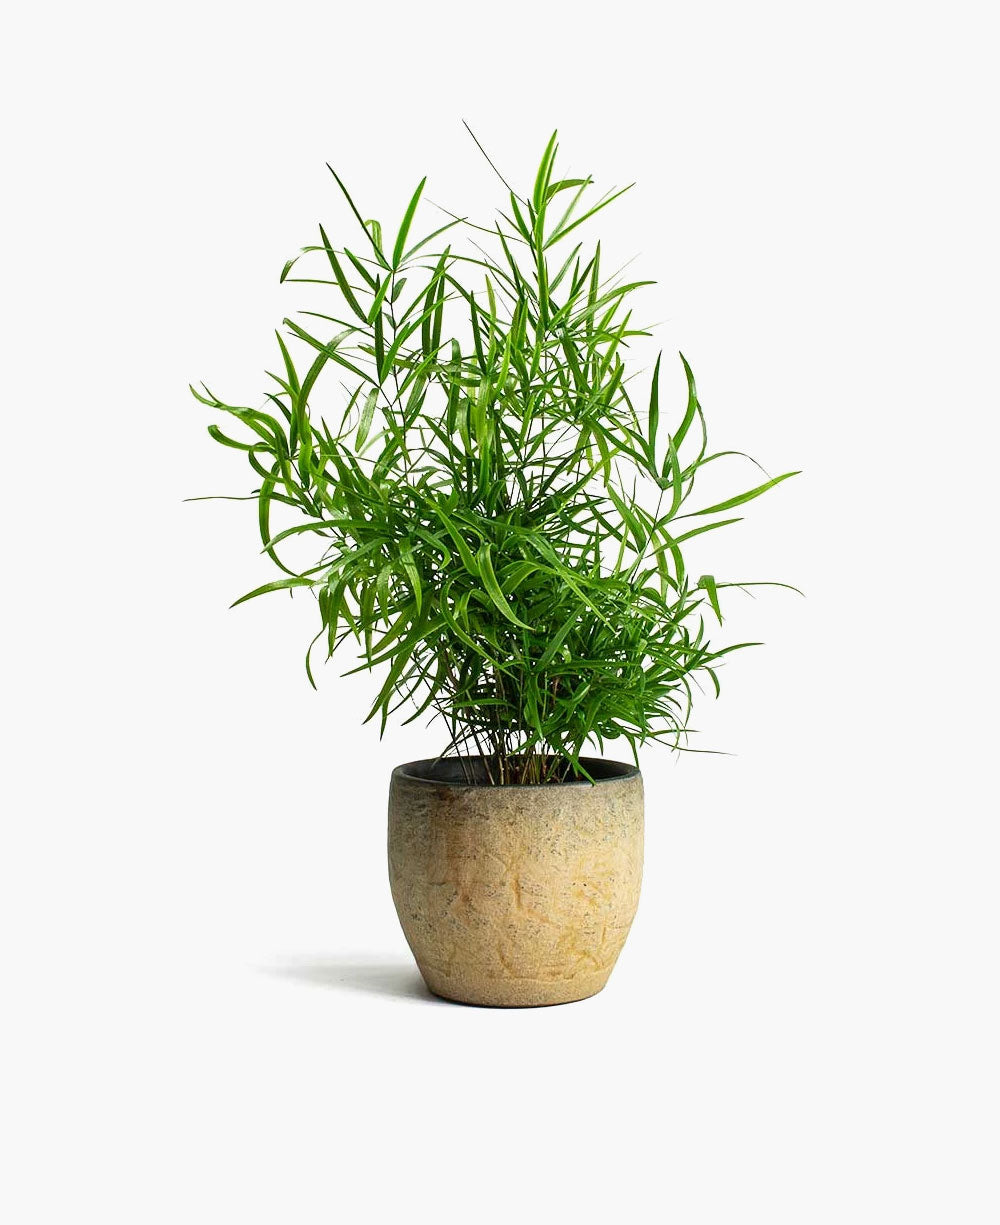 Areca Palm Boosted Sale